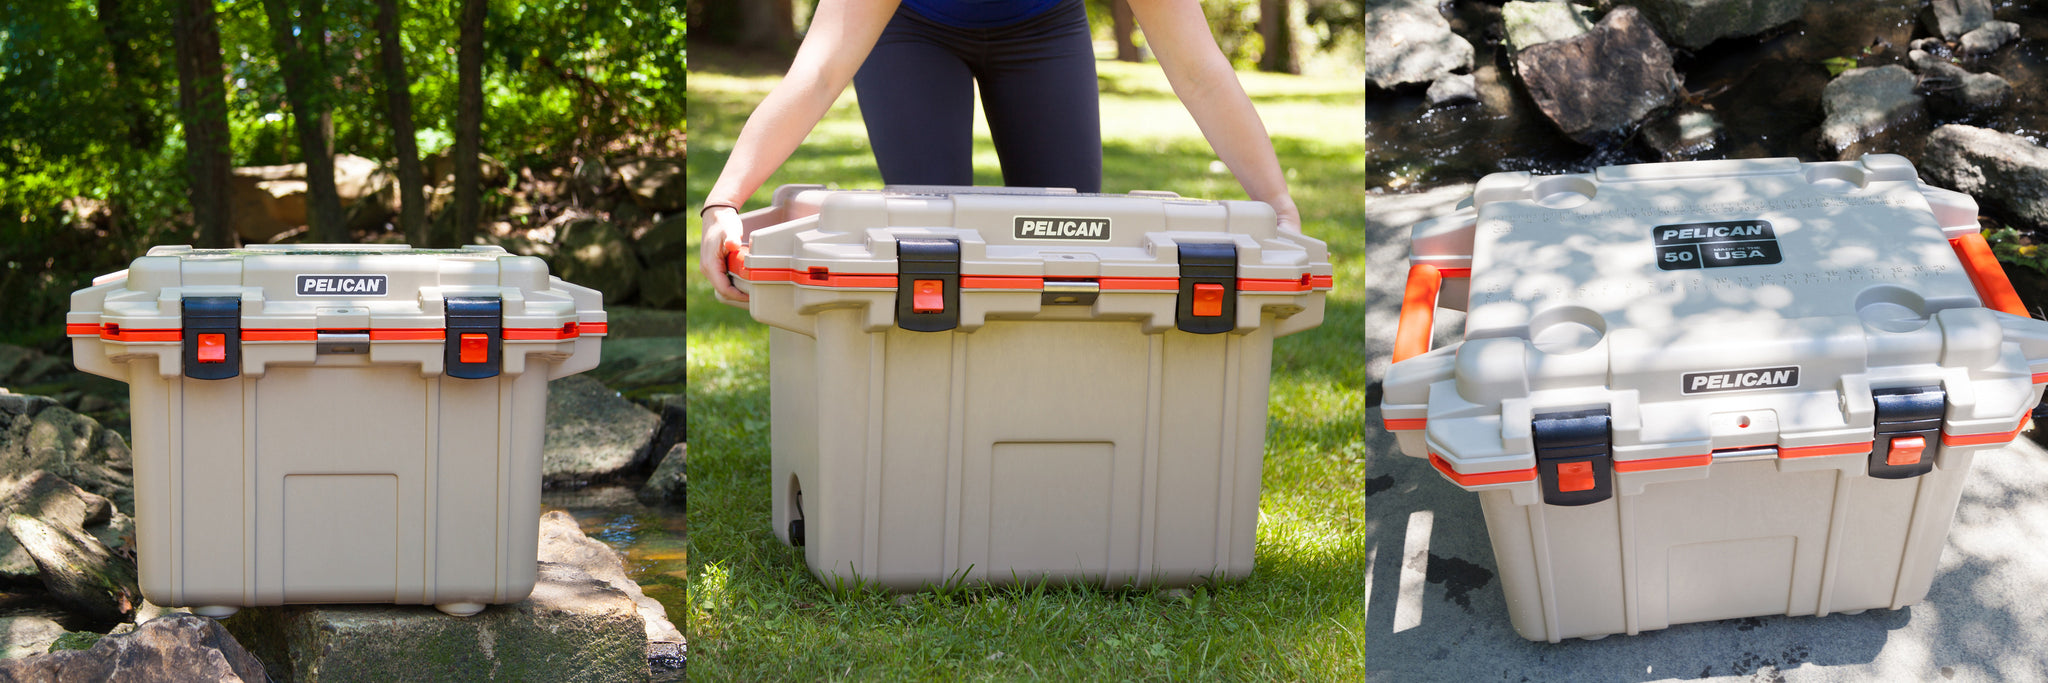 50QT Pelican Elite Coolers Application Images